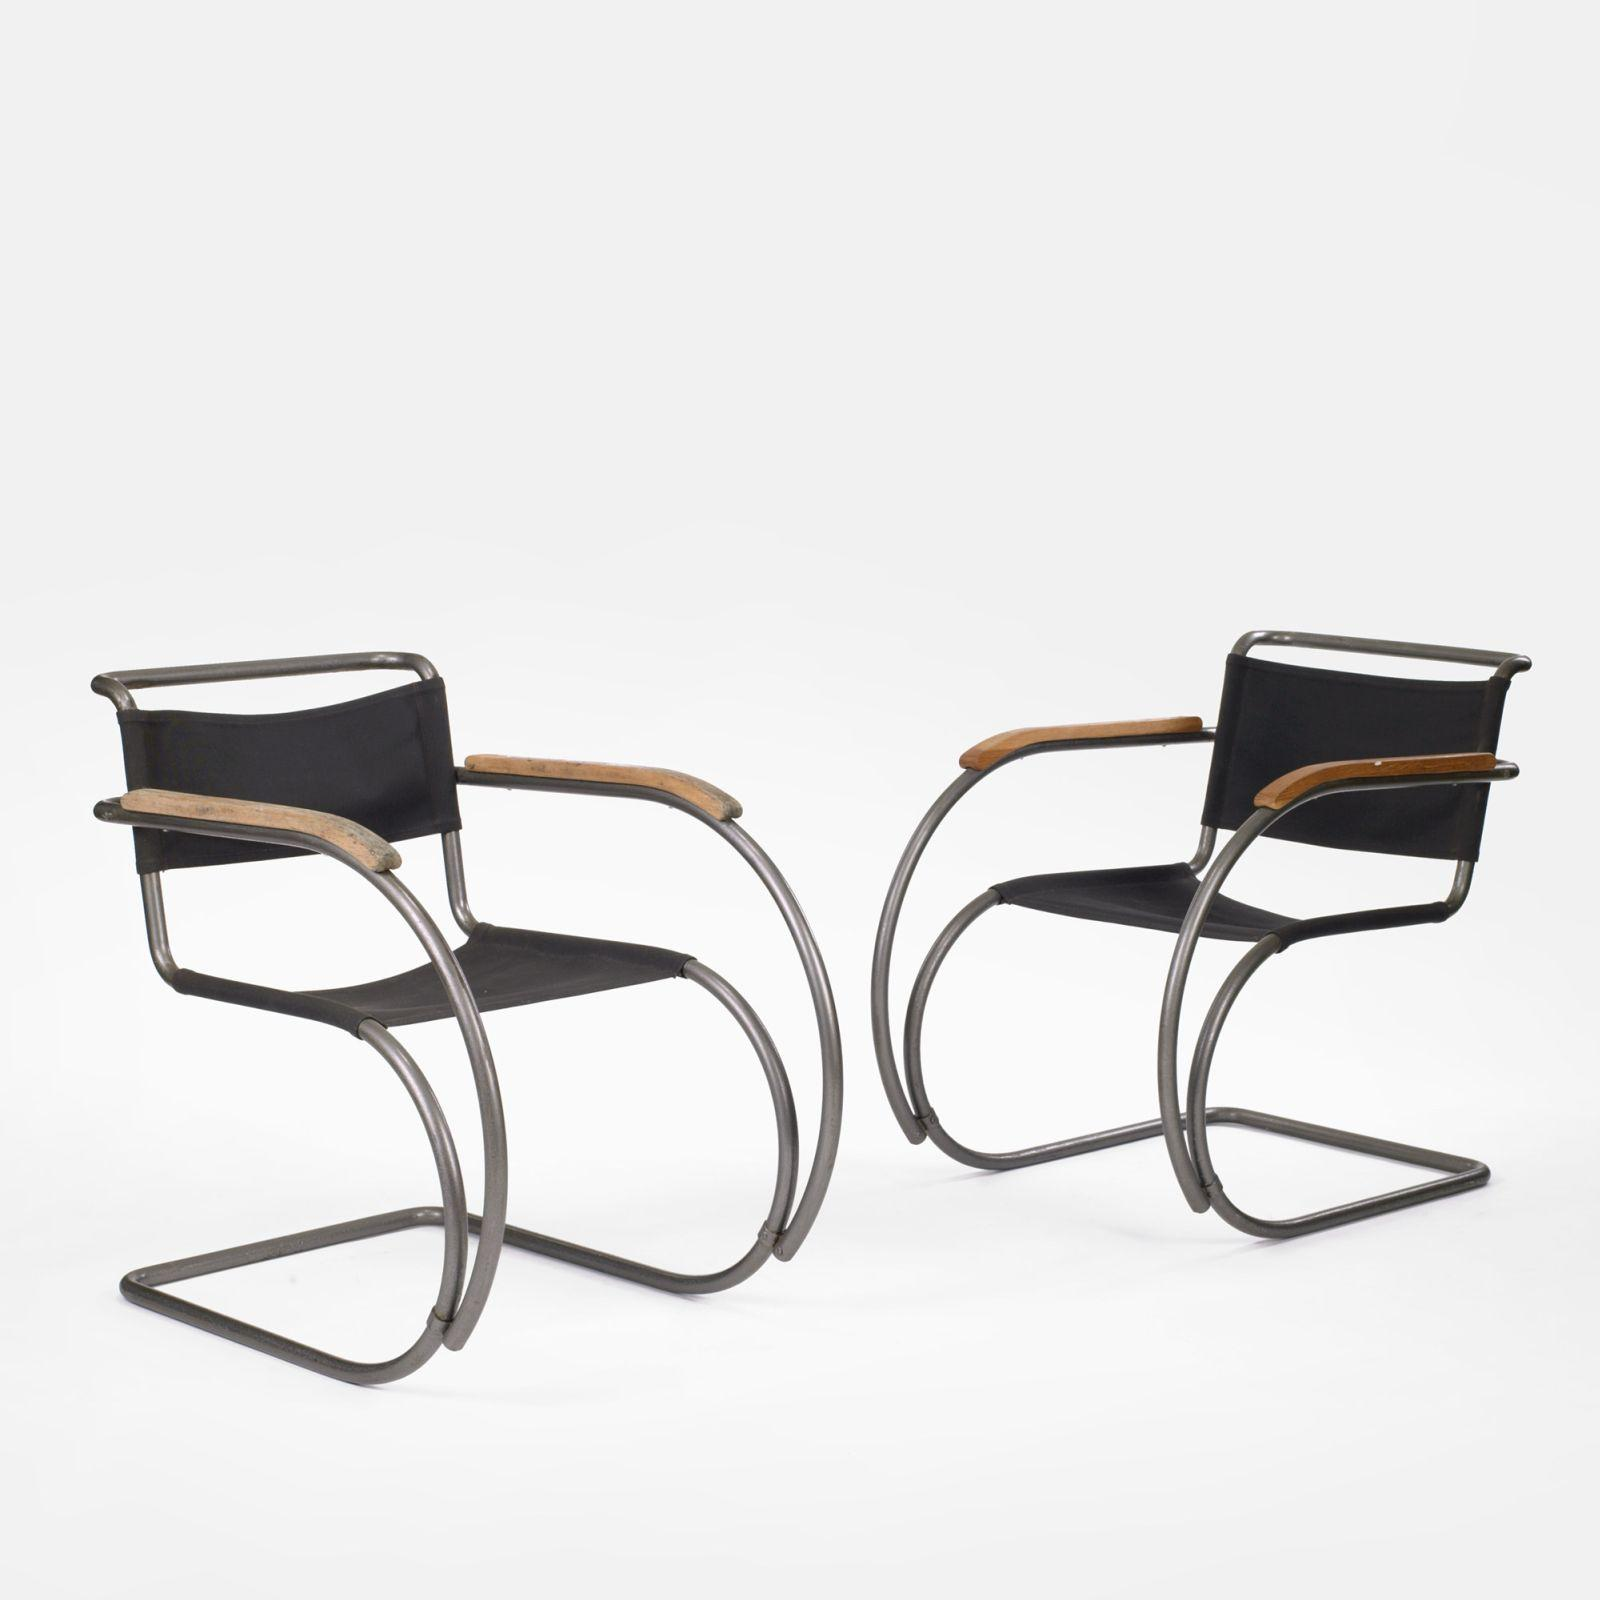 ludwig mies van der rohe mr20 lounge chairs pair. Black Bedroom Furniture Sets. Home Design Ideas